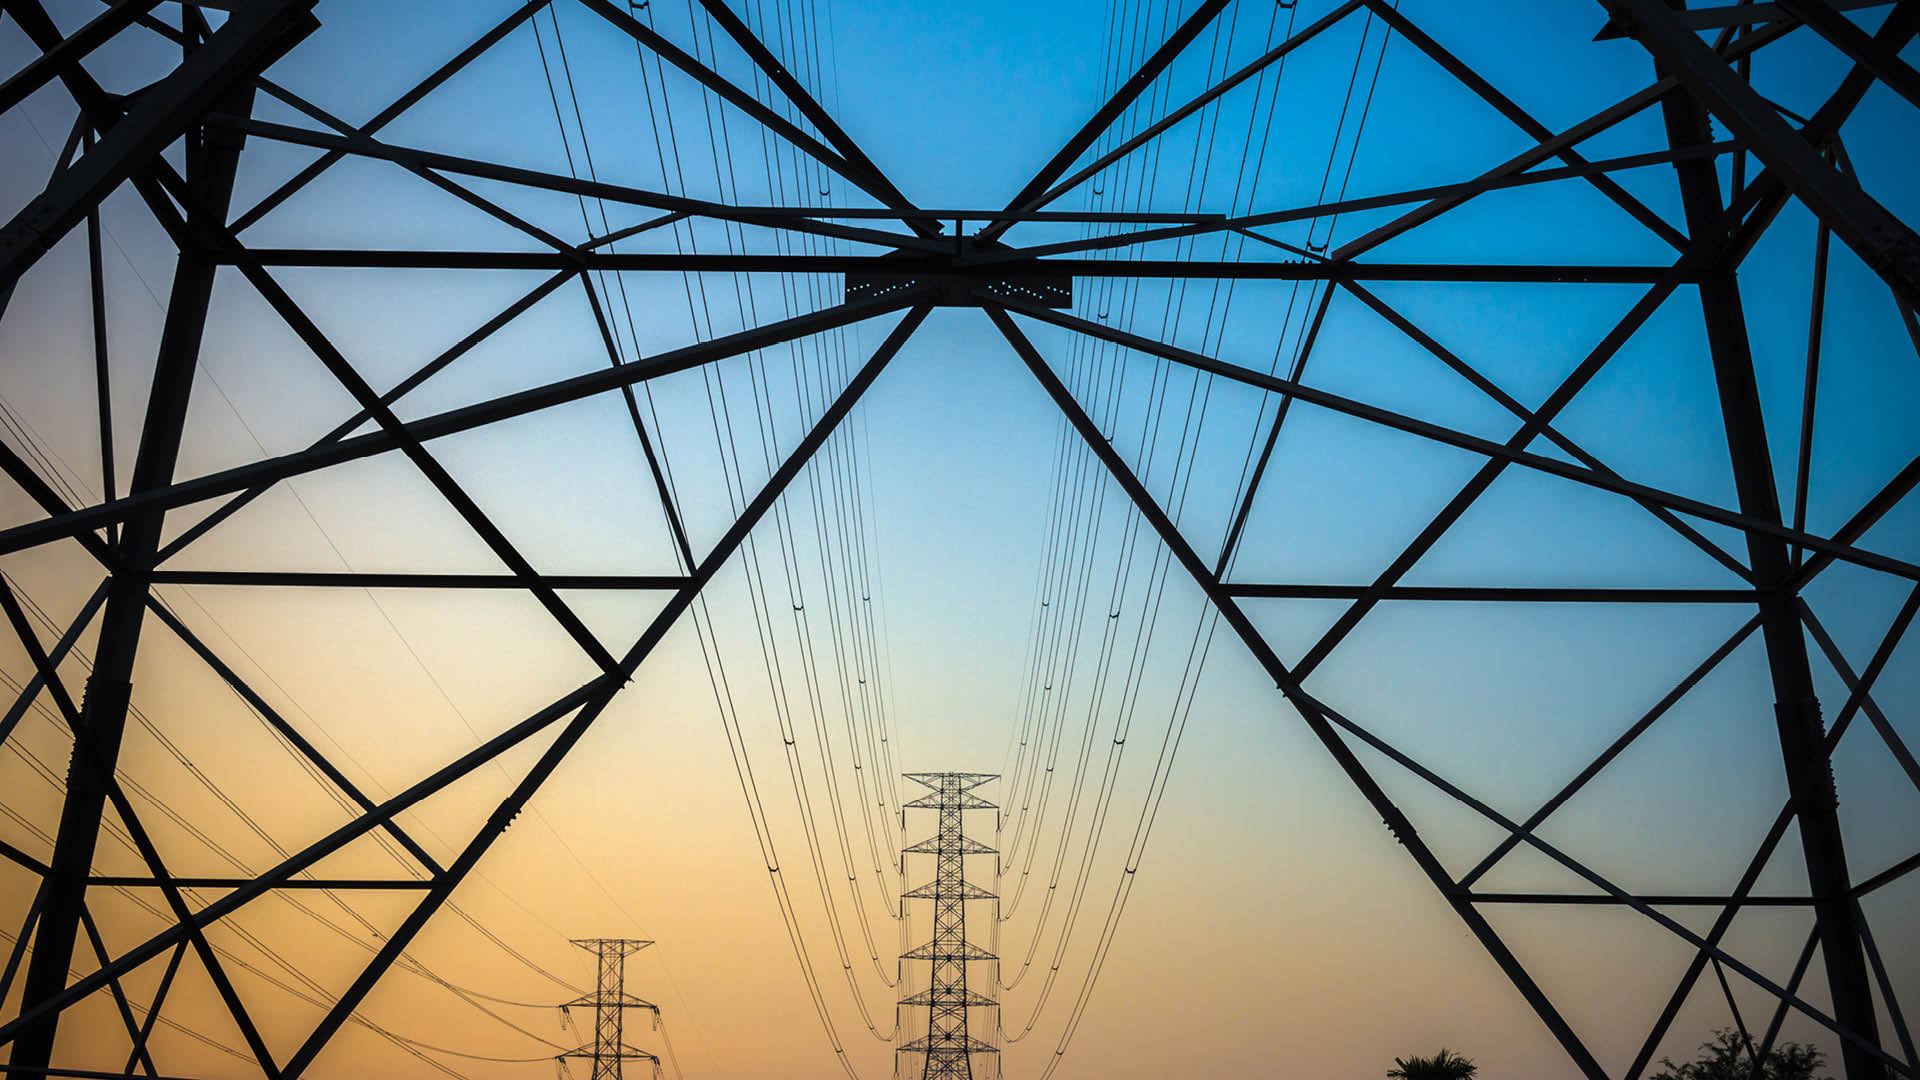 Stormy weather ahead for energy transition M&A